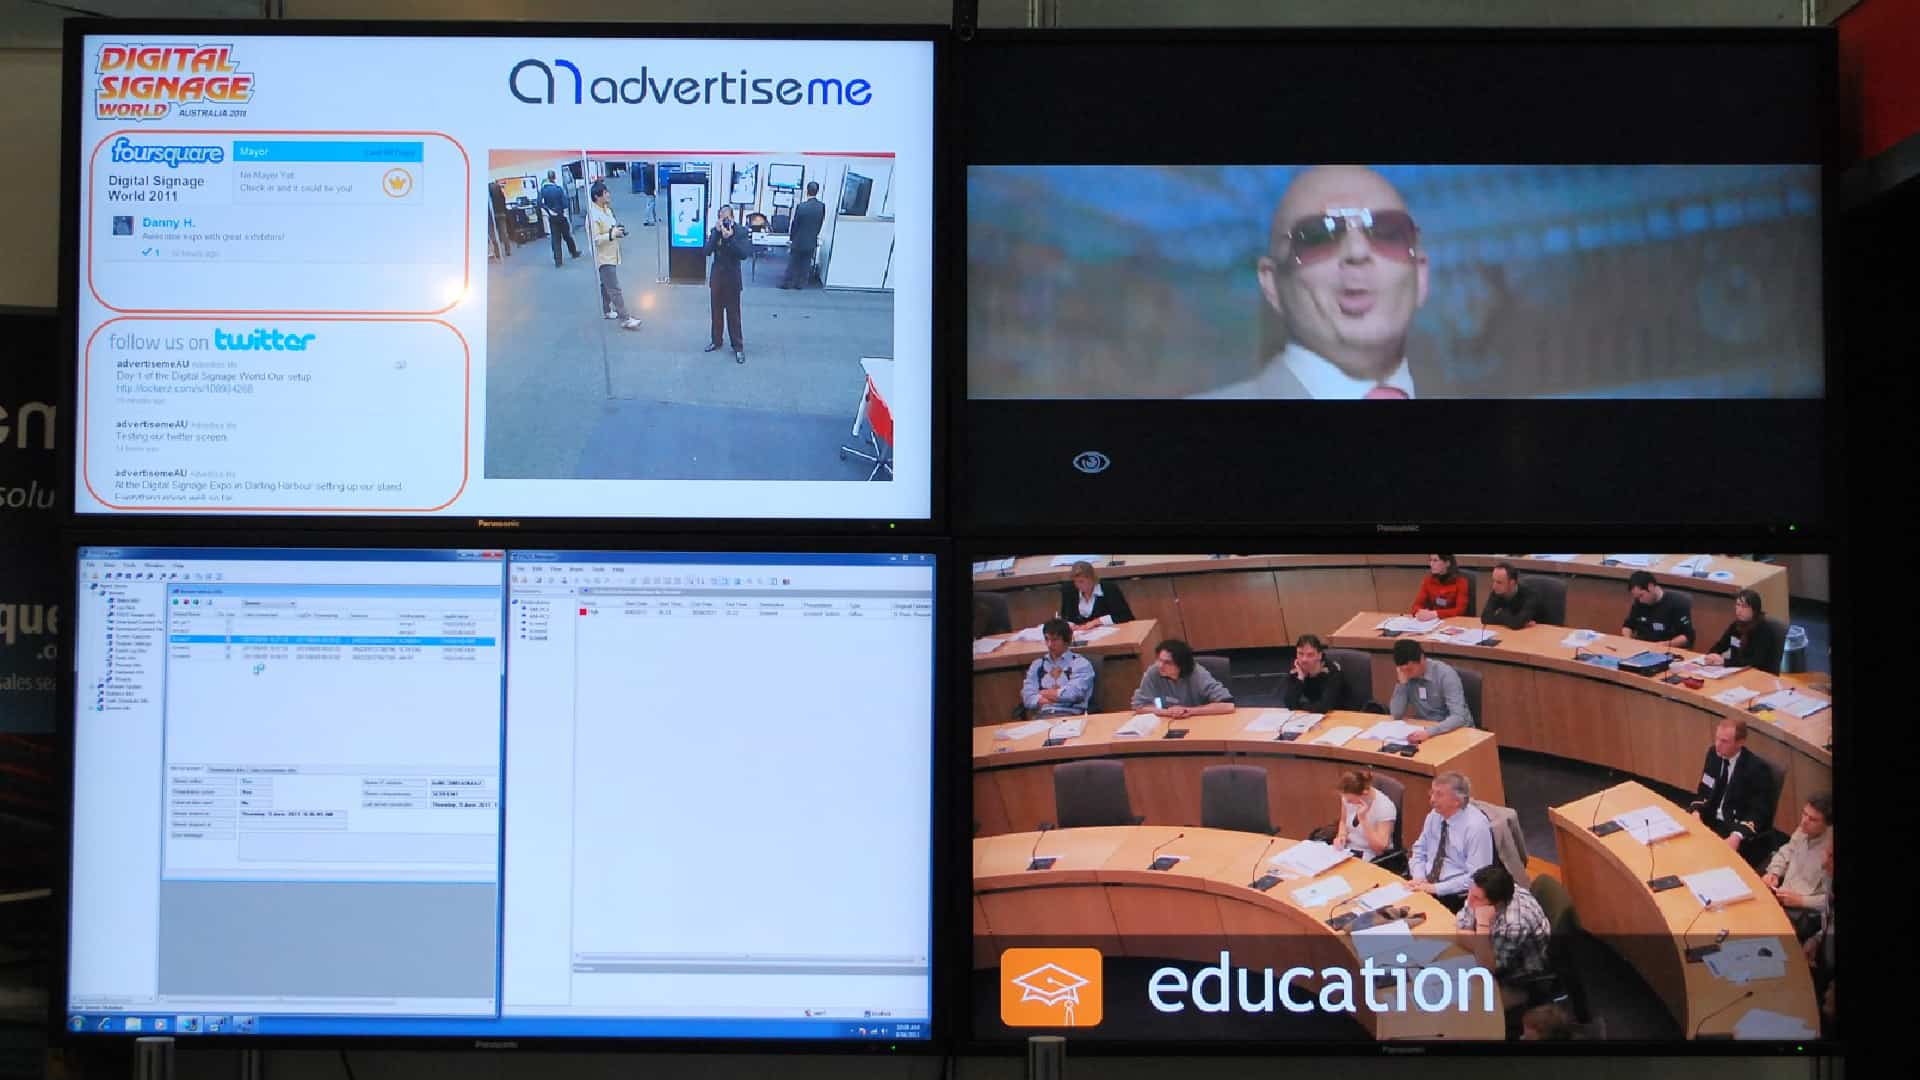 Video Wall – Digital Signage World Expo